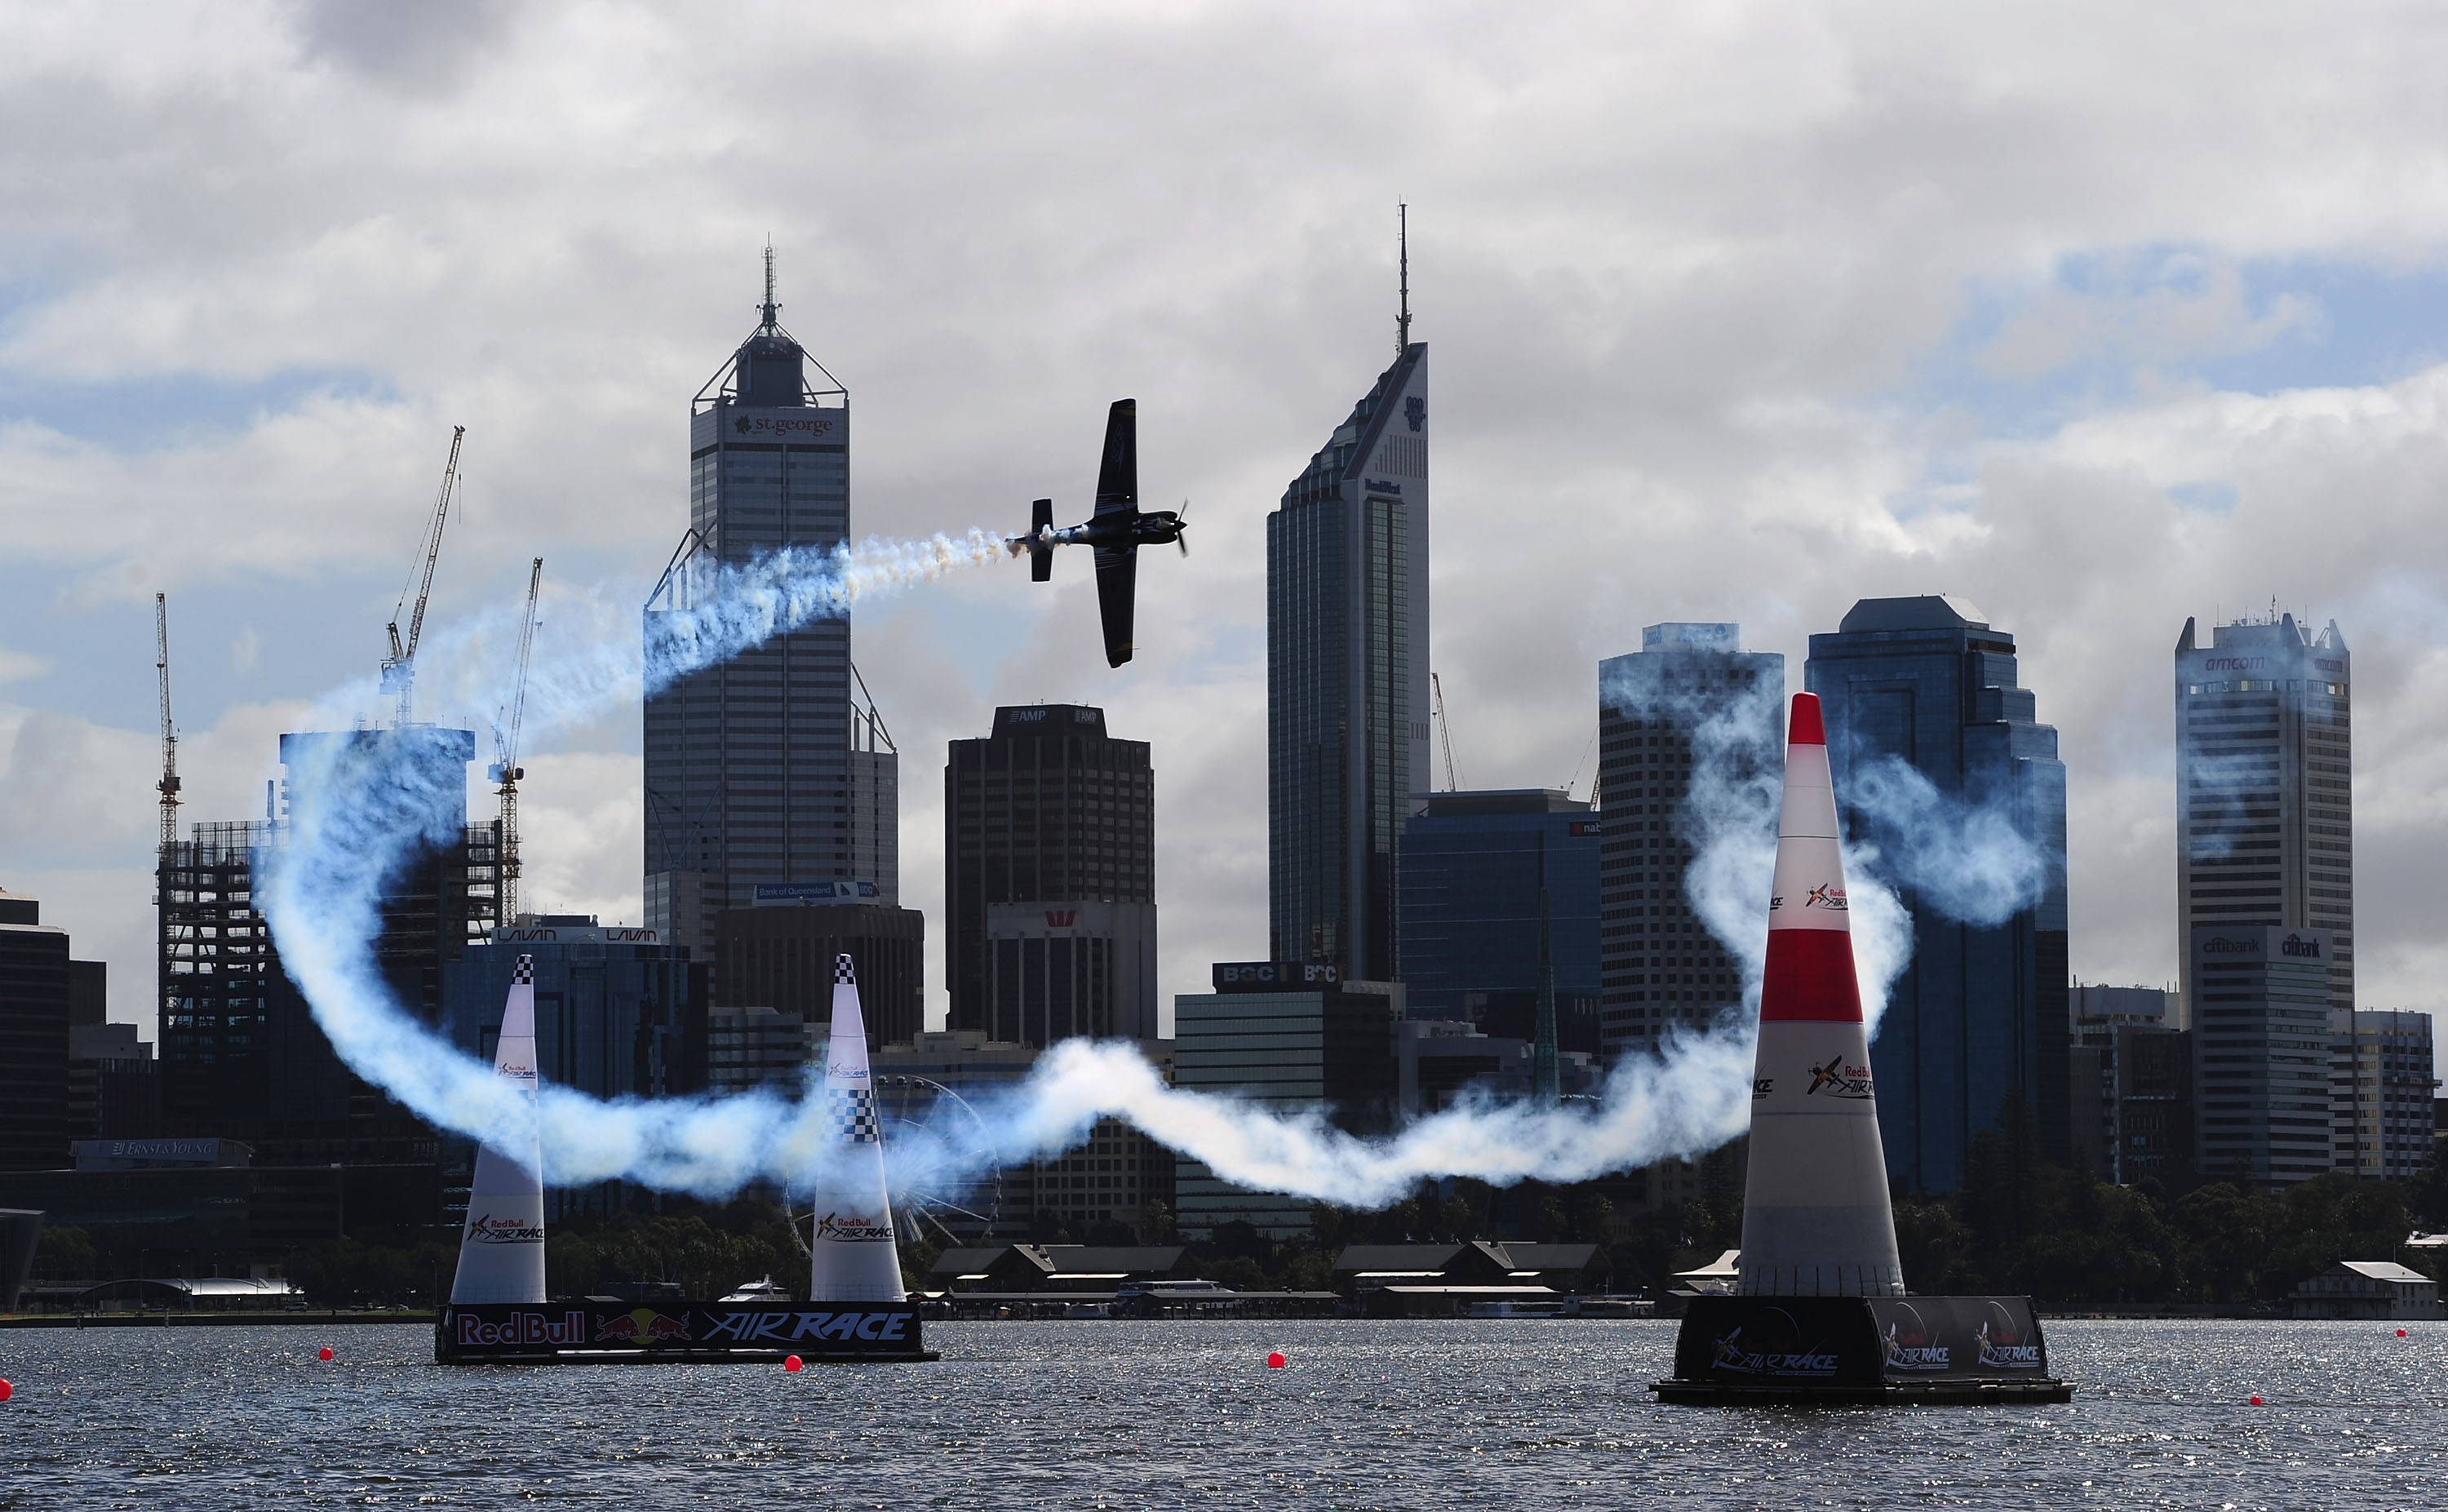 Aeroplans - L'Espagnol Alejandro Maclean en action lors du premier entrainement Red Bull Air Race jeudi 15 avril à Perth, Australie (Mike Hewitt / Getty Images for Red Bull Air Race)